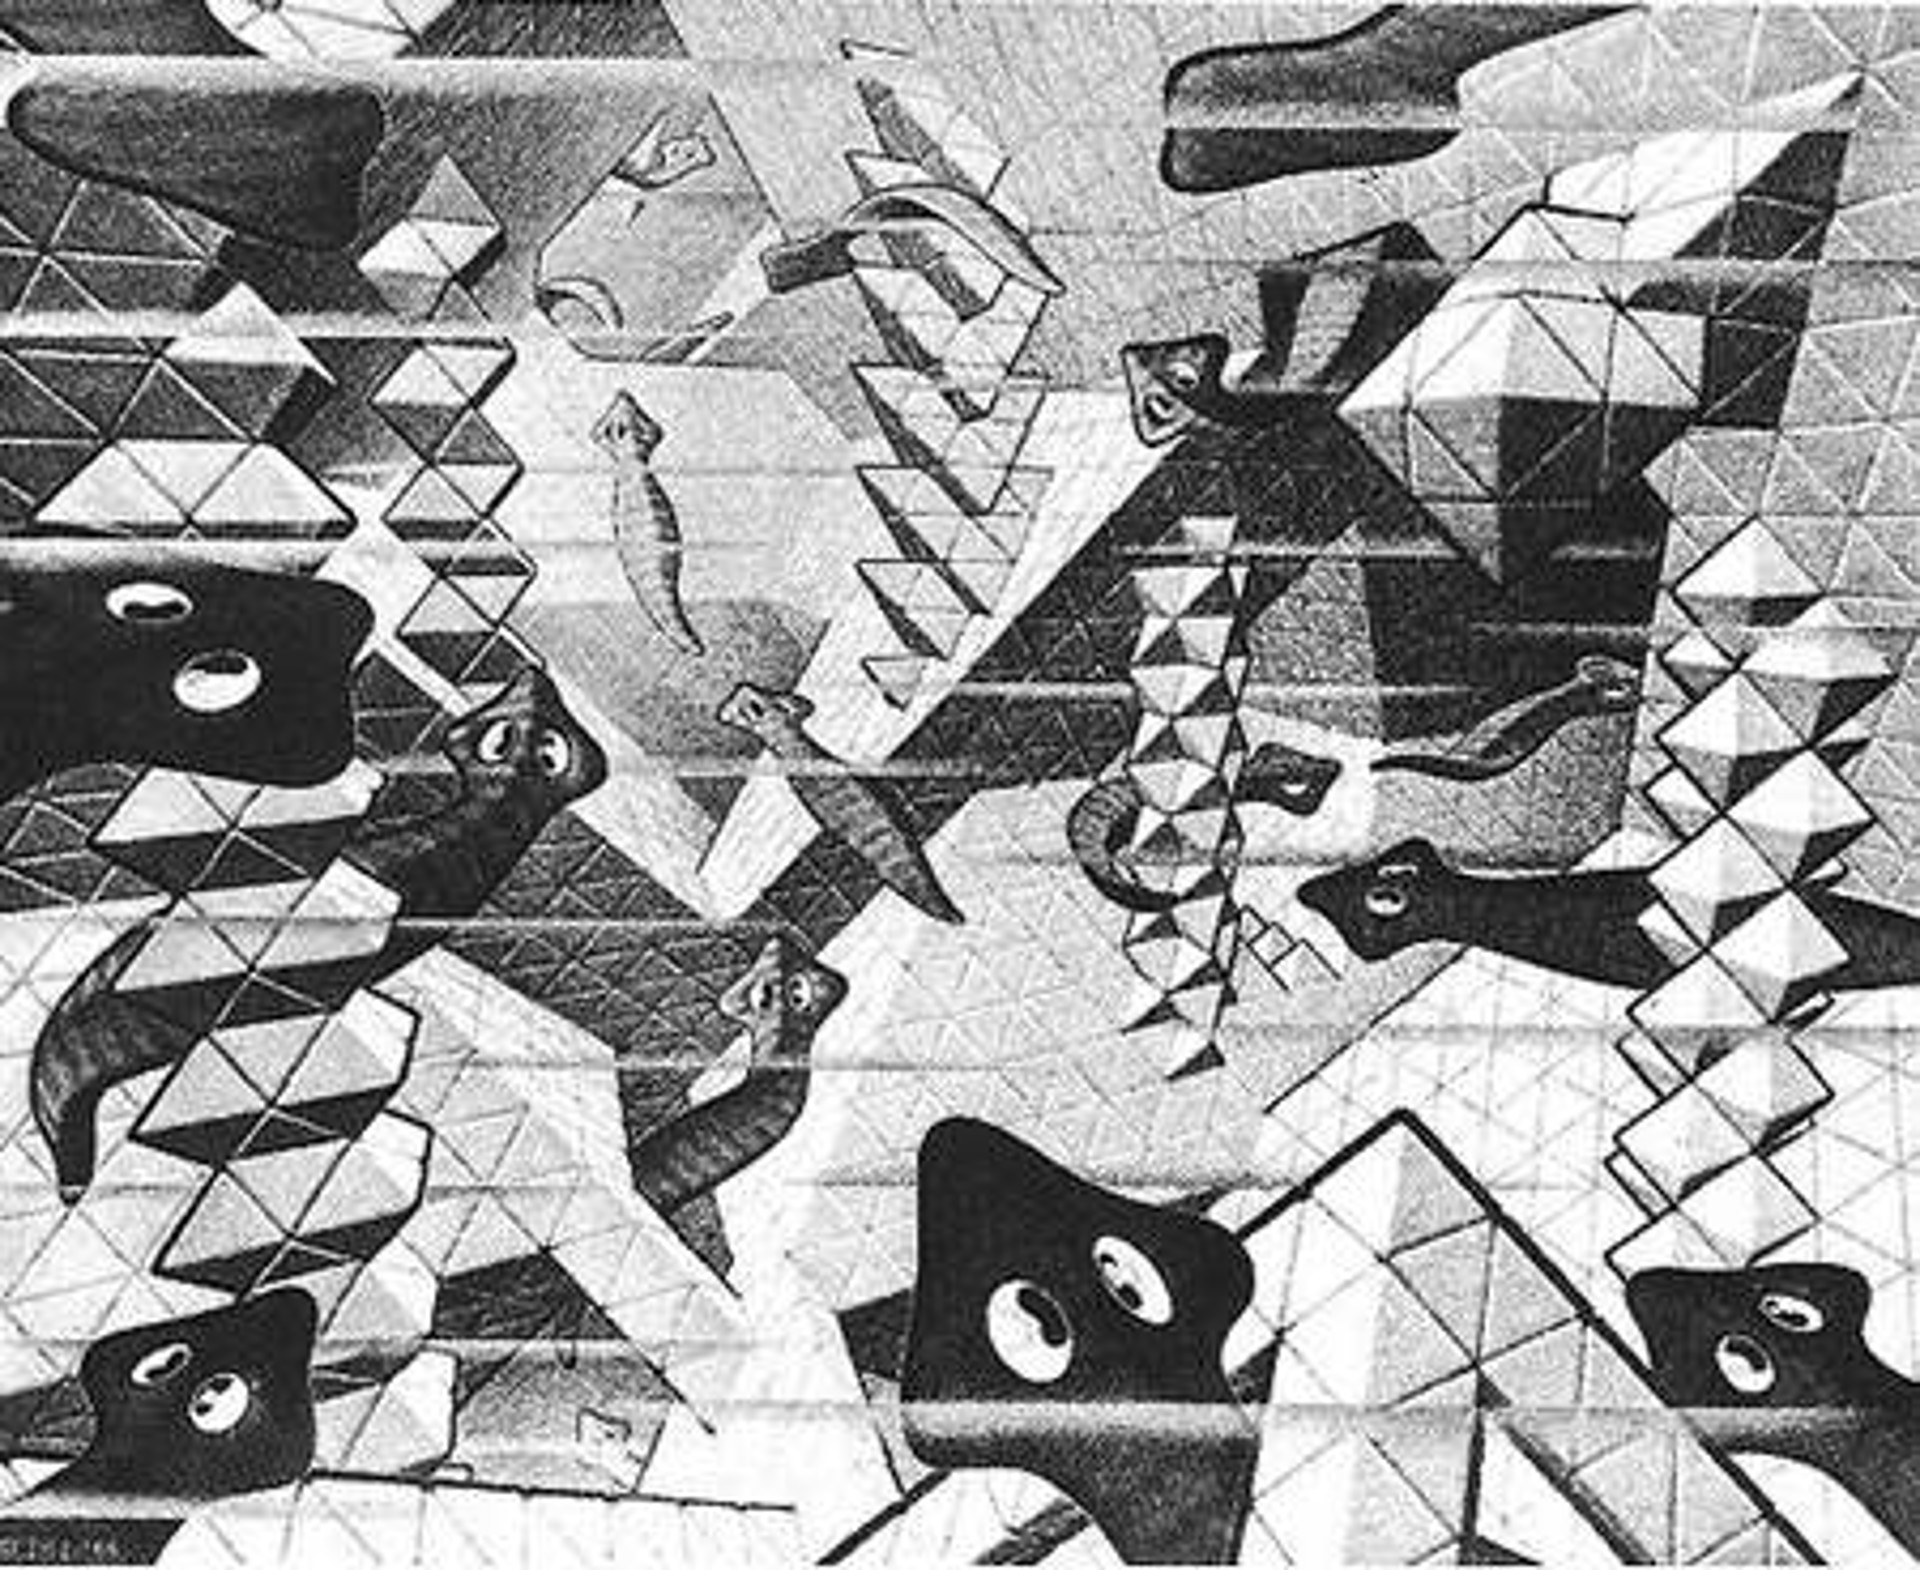 Flatworms by M.C. Escher